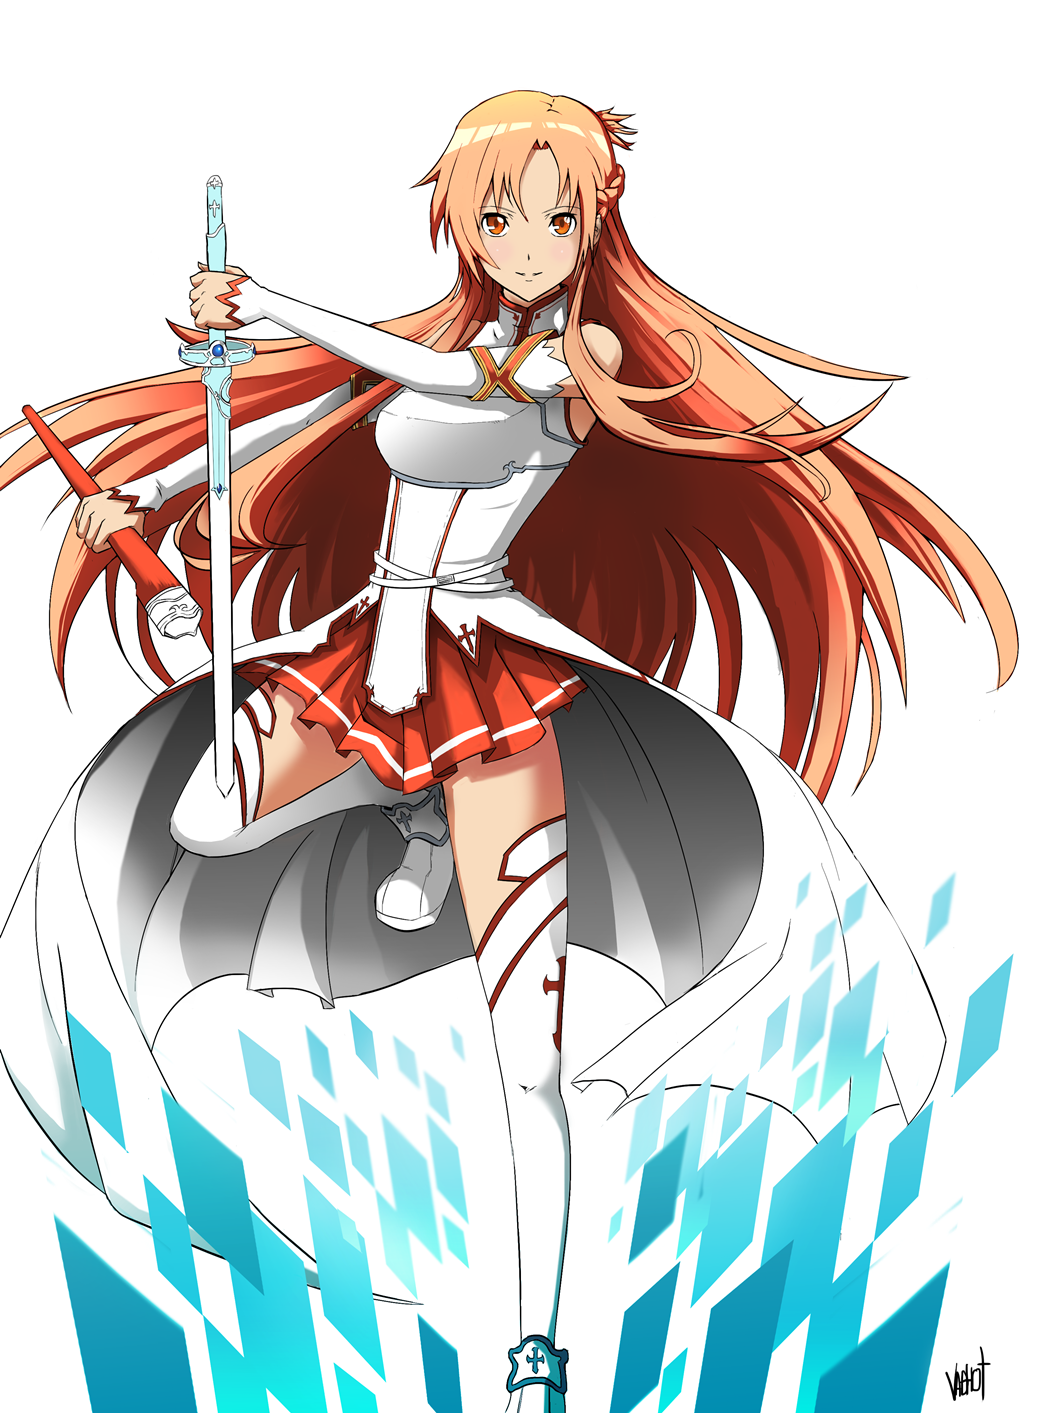 Asuna sword art online by vaghot